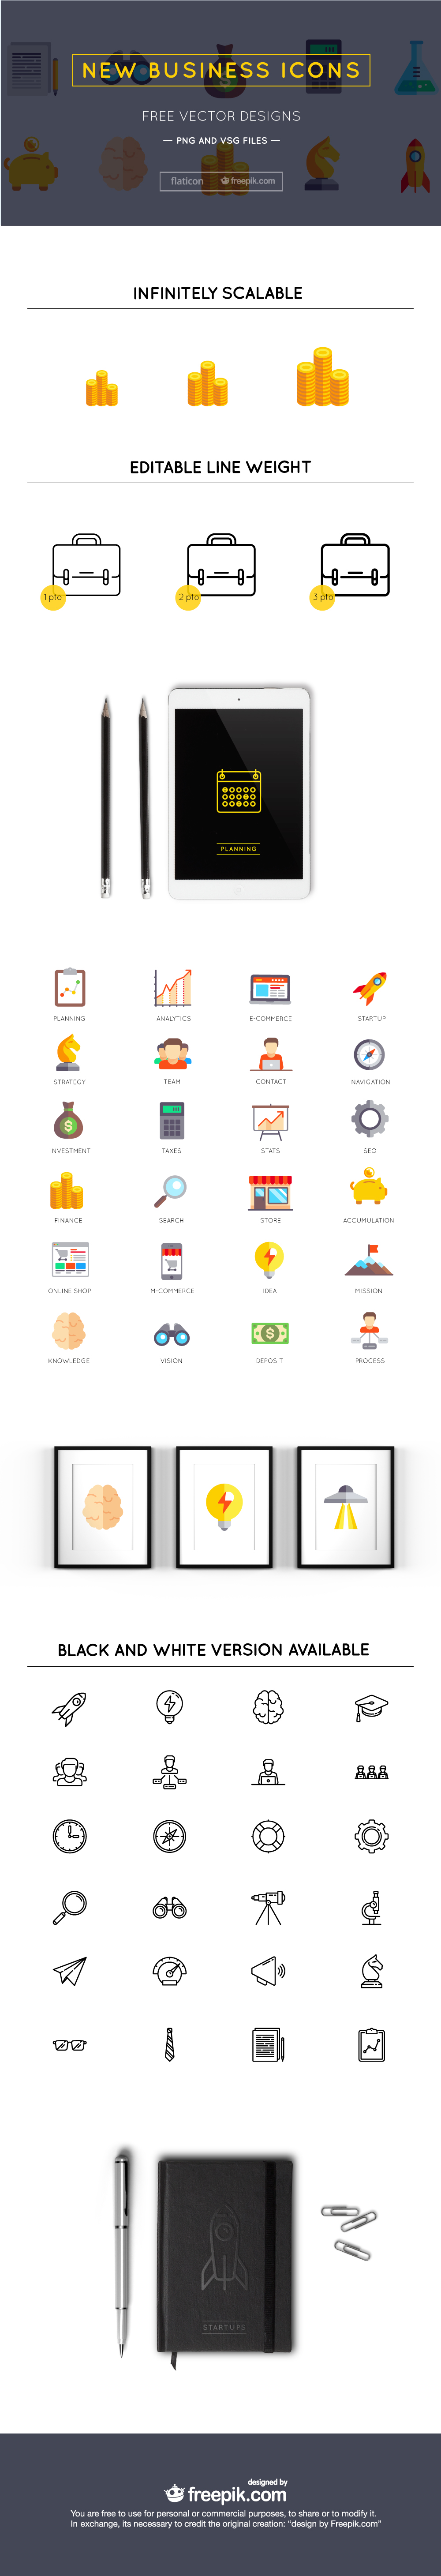 Cover Startups new business 1 36 Free business icons set in Vector & PNG